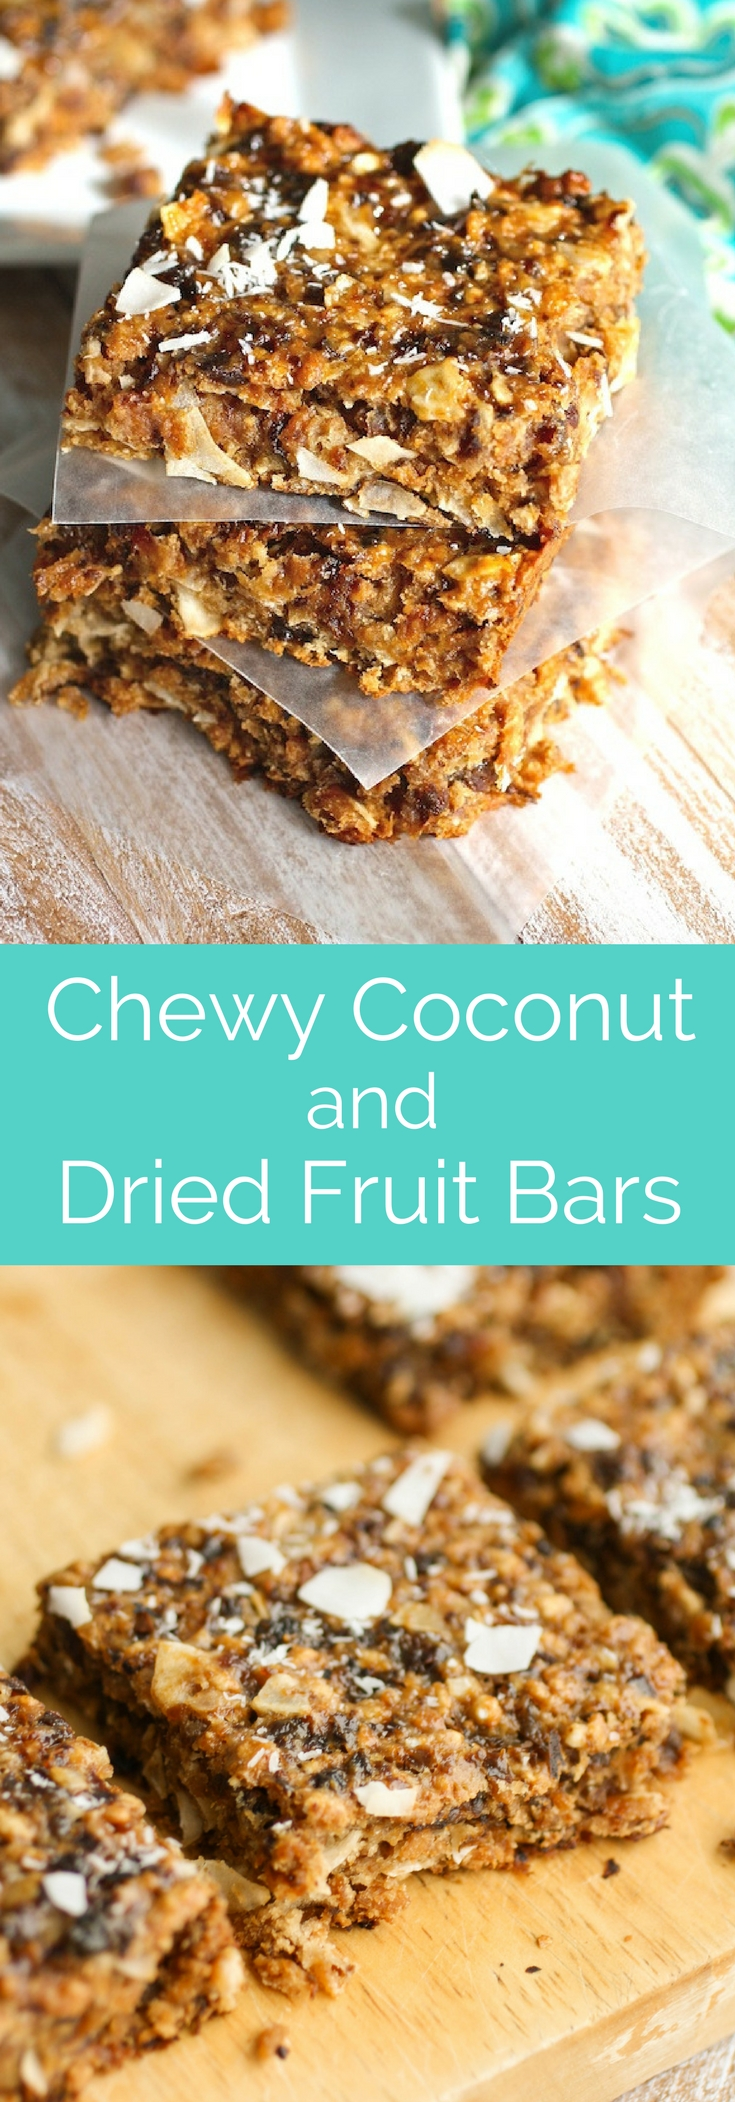 Chewy Coconut and Dried Fruit Bars are sweet and delightful! These chewy bars have a healthy vibe for a snack or dessert.